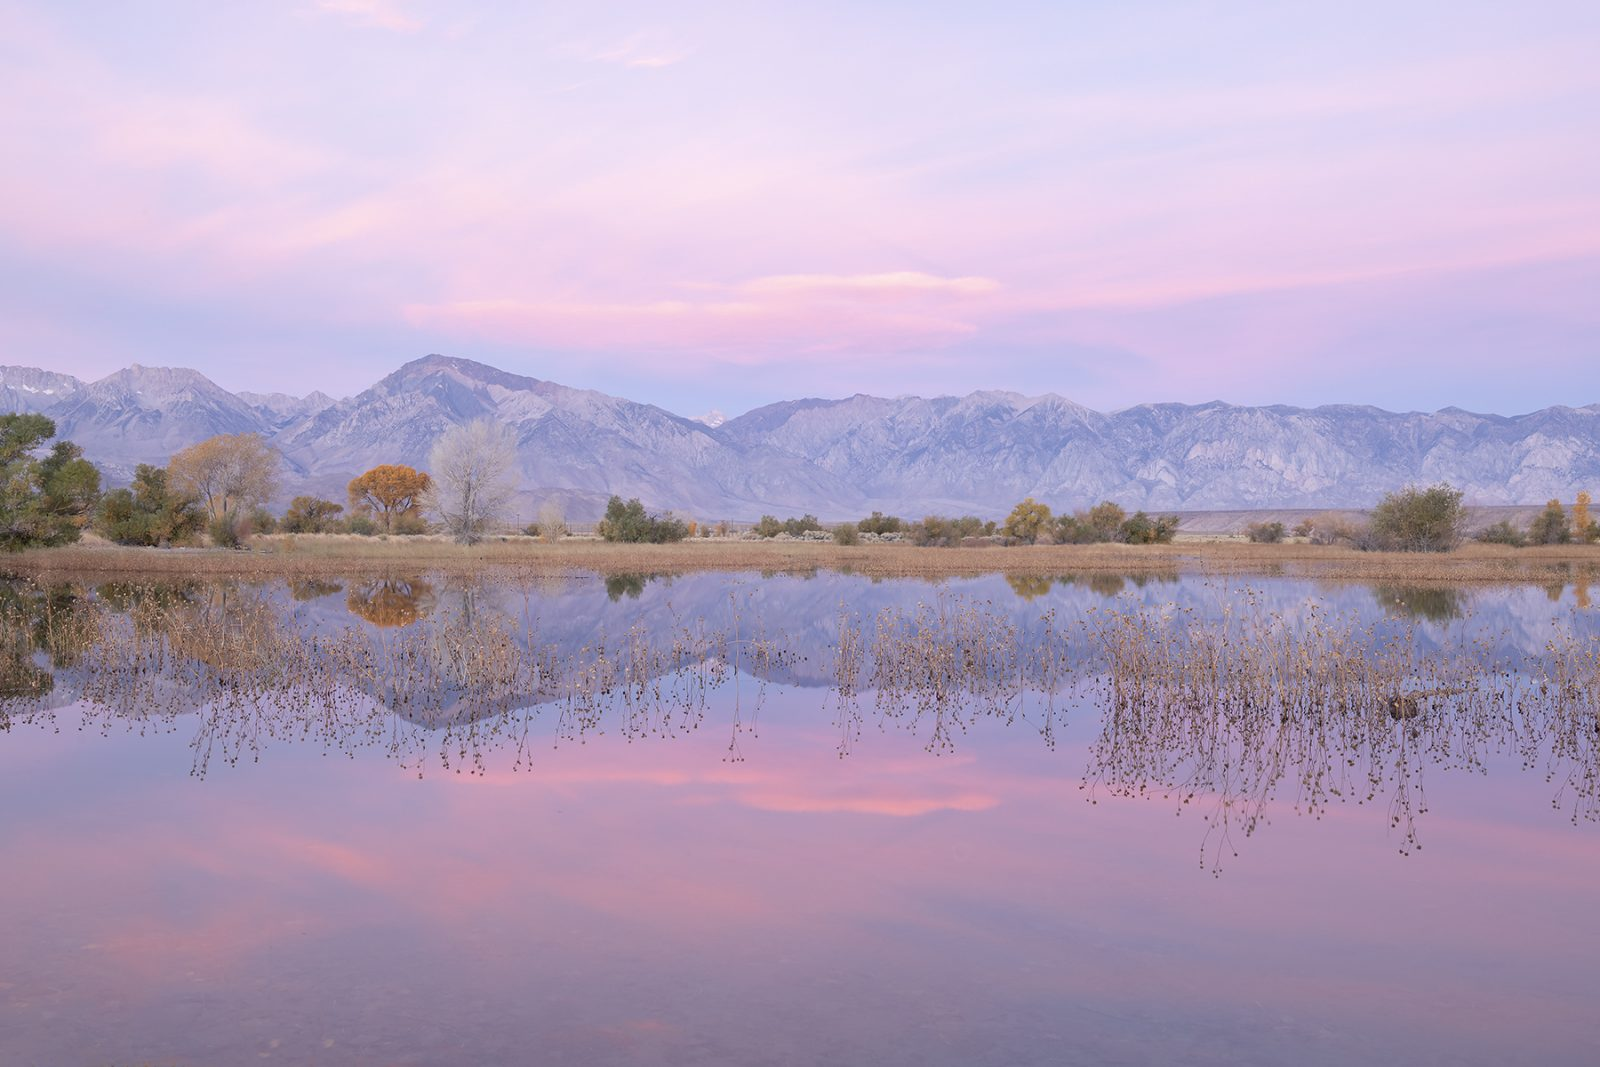 Sunrise, Owens Valley